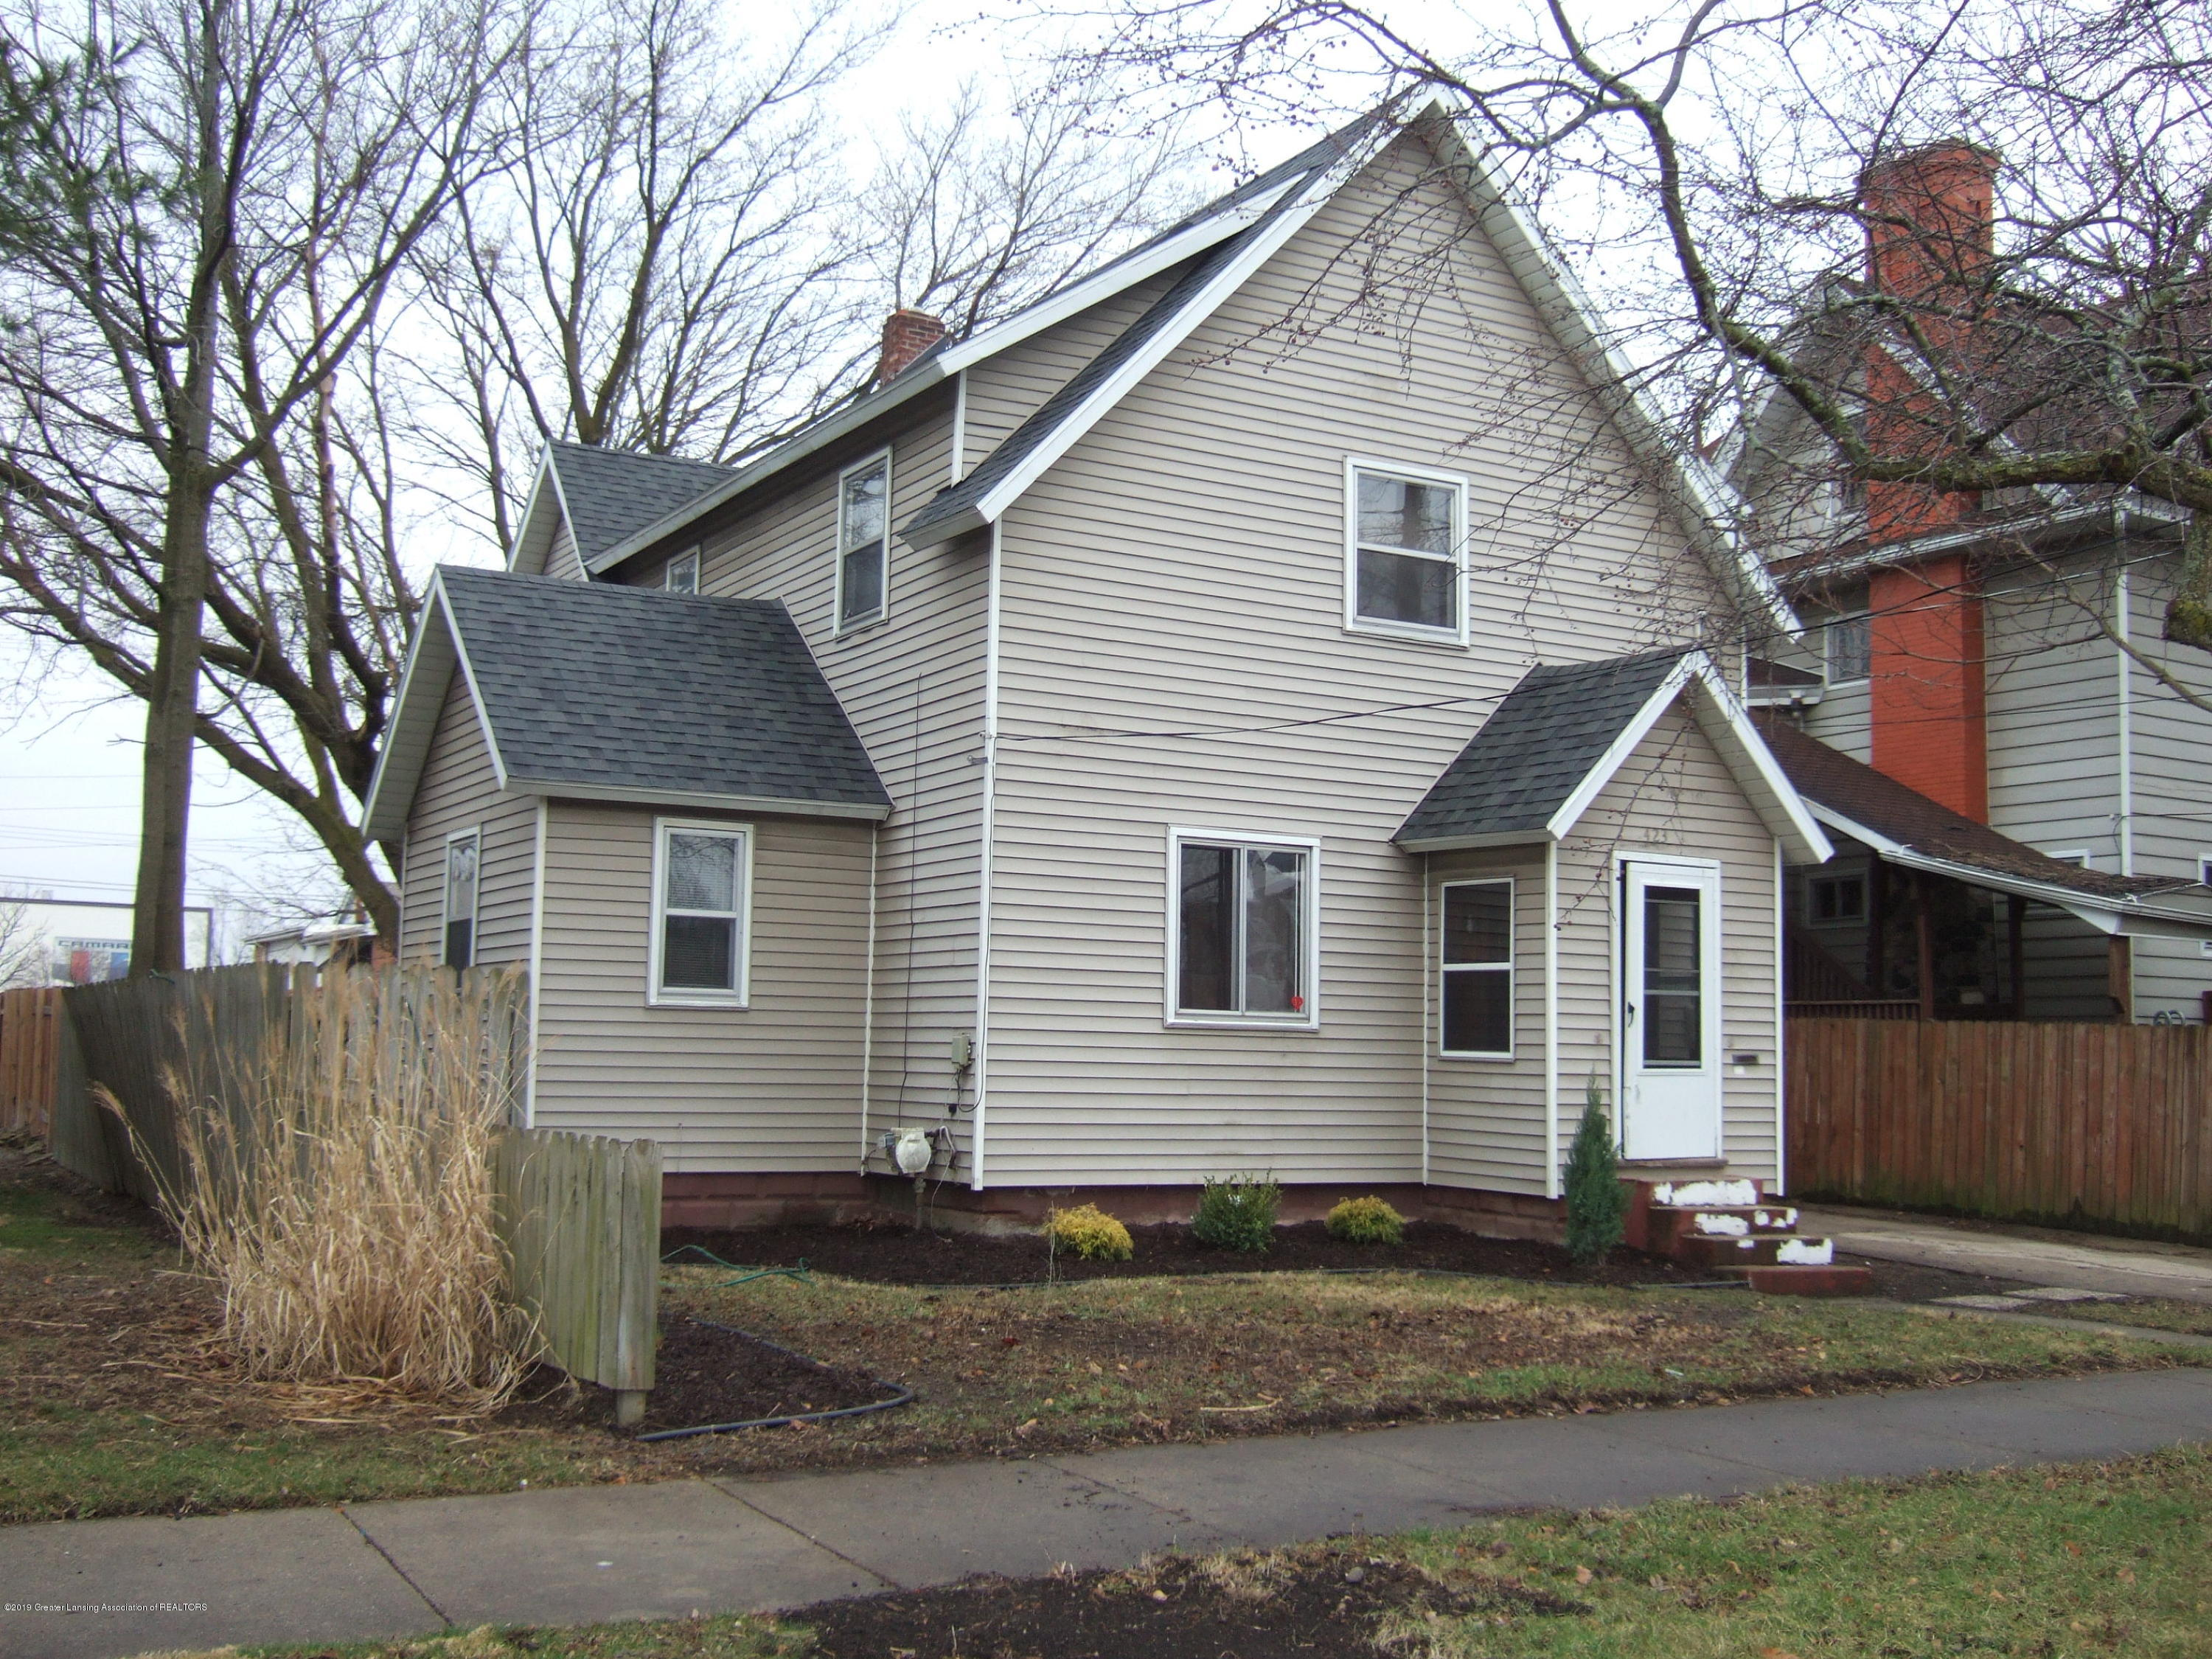 423 W Hillsdale St - Front View - 2